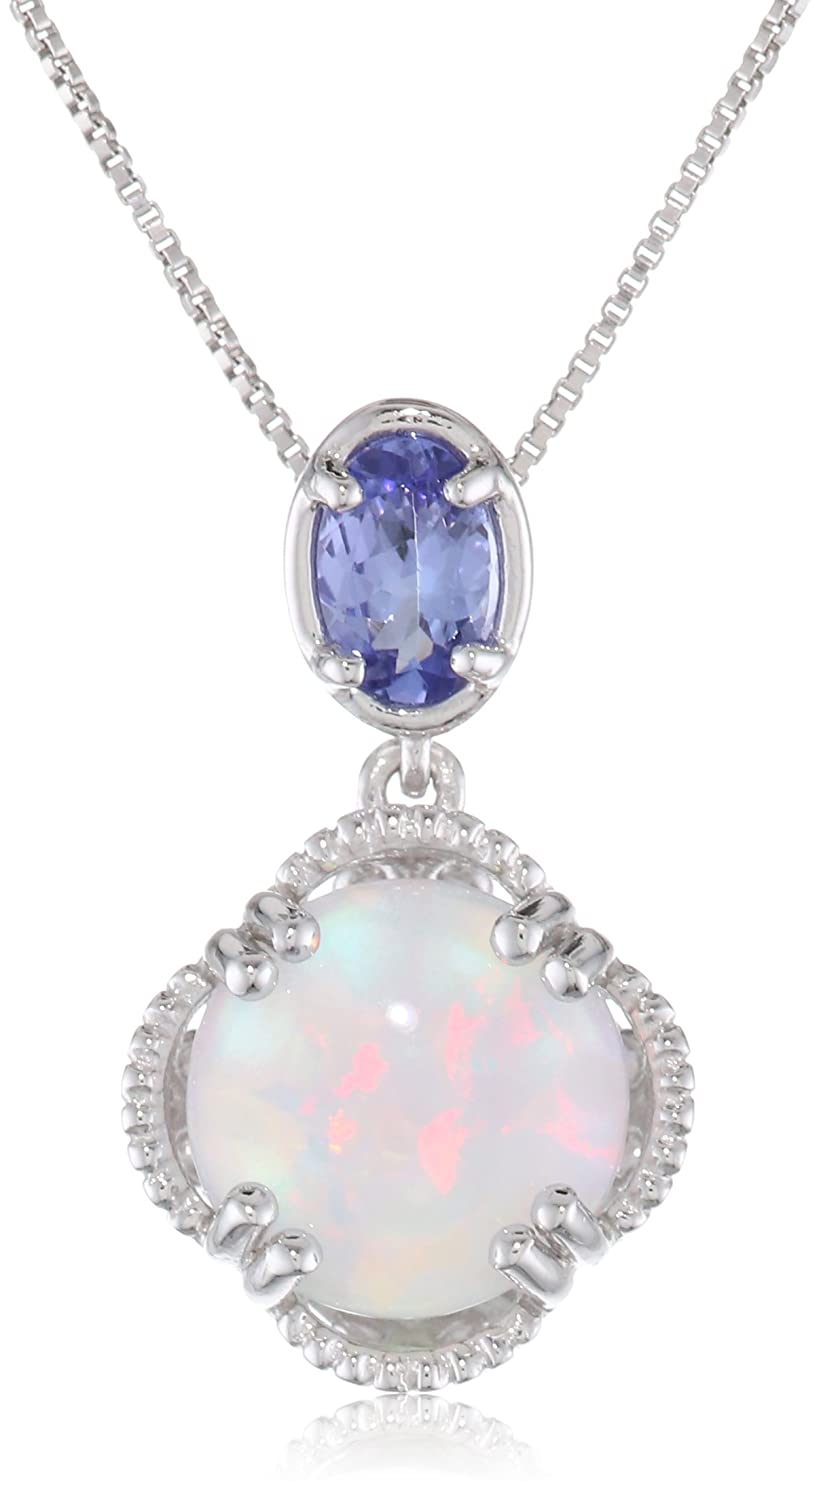 ed jewelry id pendants a round with ur tiffany fmt m necklaces pendant fit constrain wid soleste tanzanite u in hei platinum